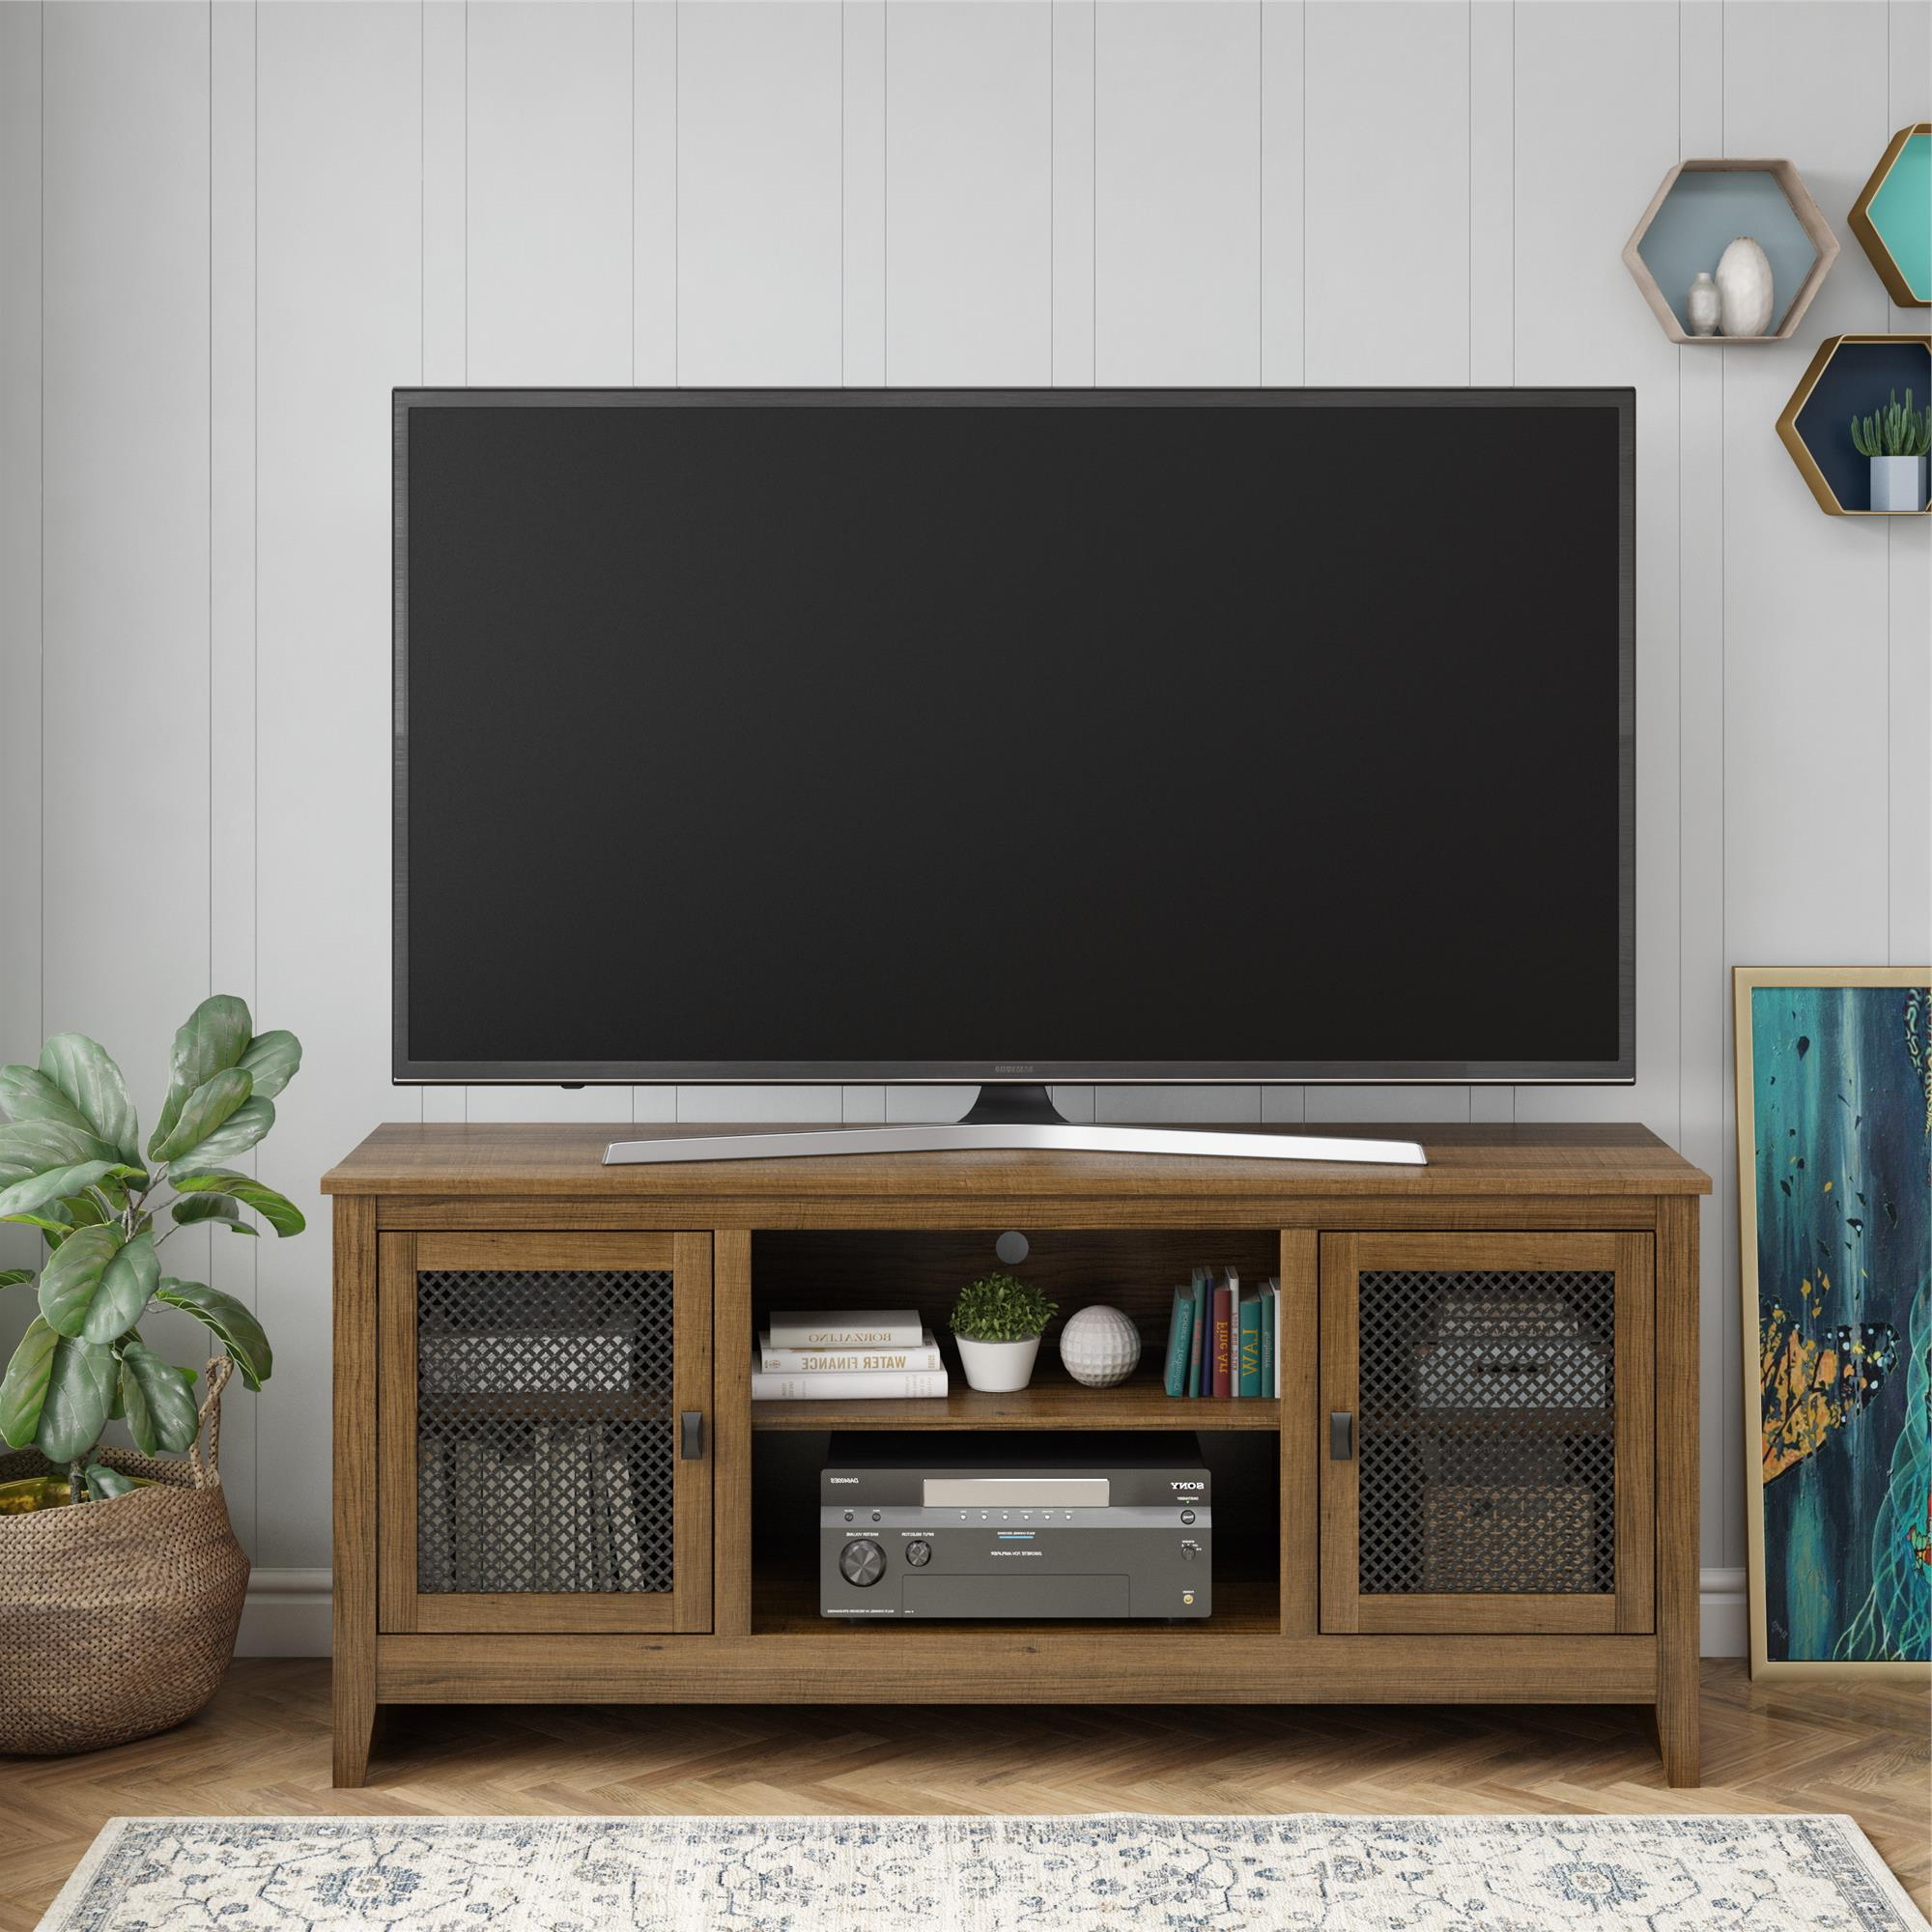 """Ameriwood Home Paradise Valley Tv Stand For Tvs Up To 65 Pertaining To 2018 Stamford Tv Stands For Tvs Up To 65"""" (View 4 of 25)"""